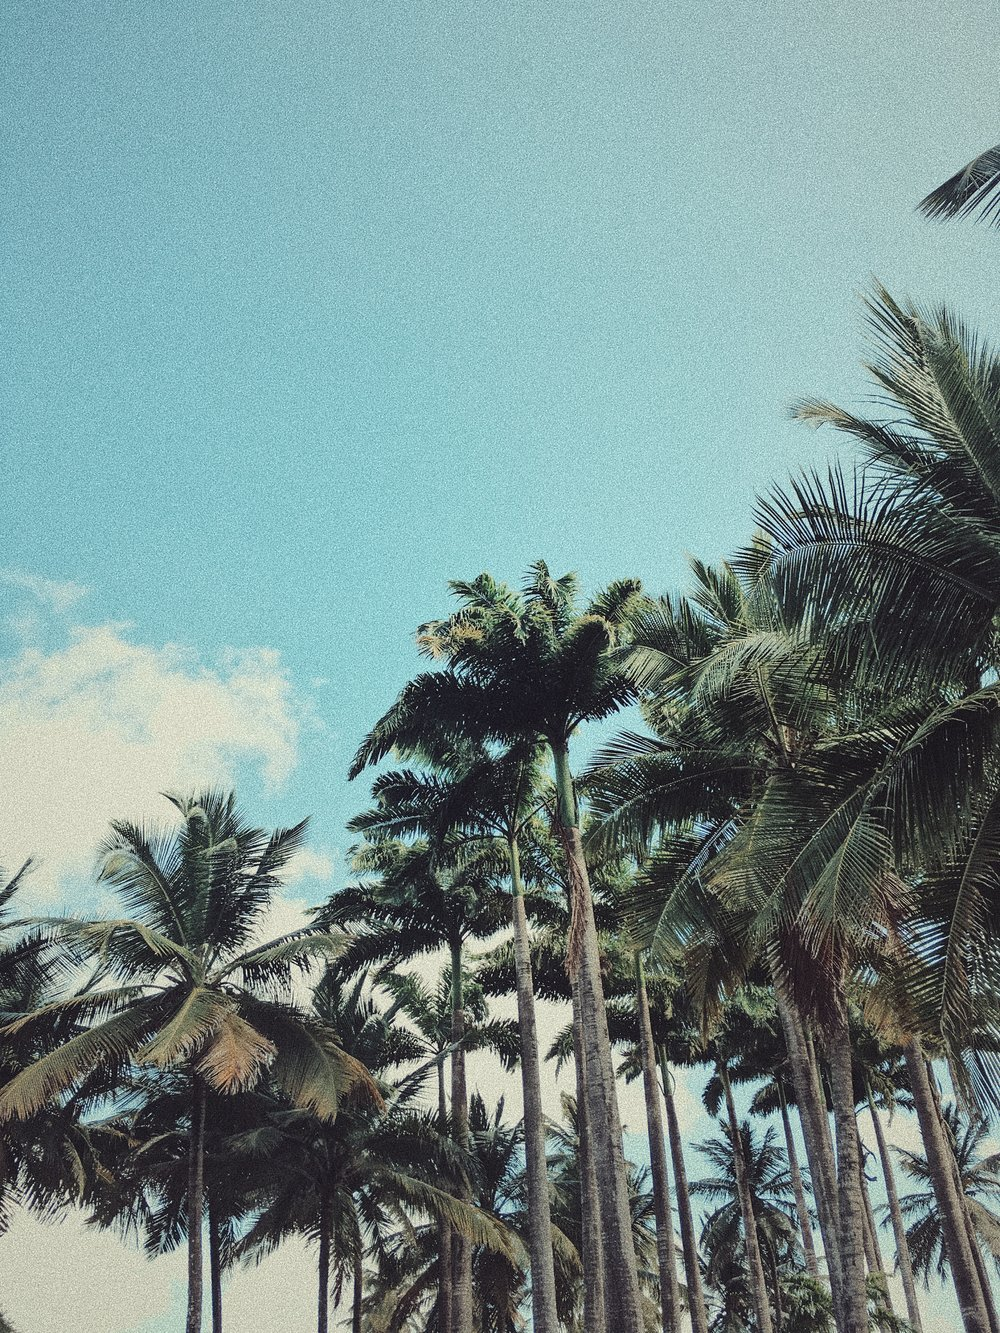 Among the Palm Trees